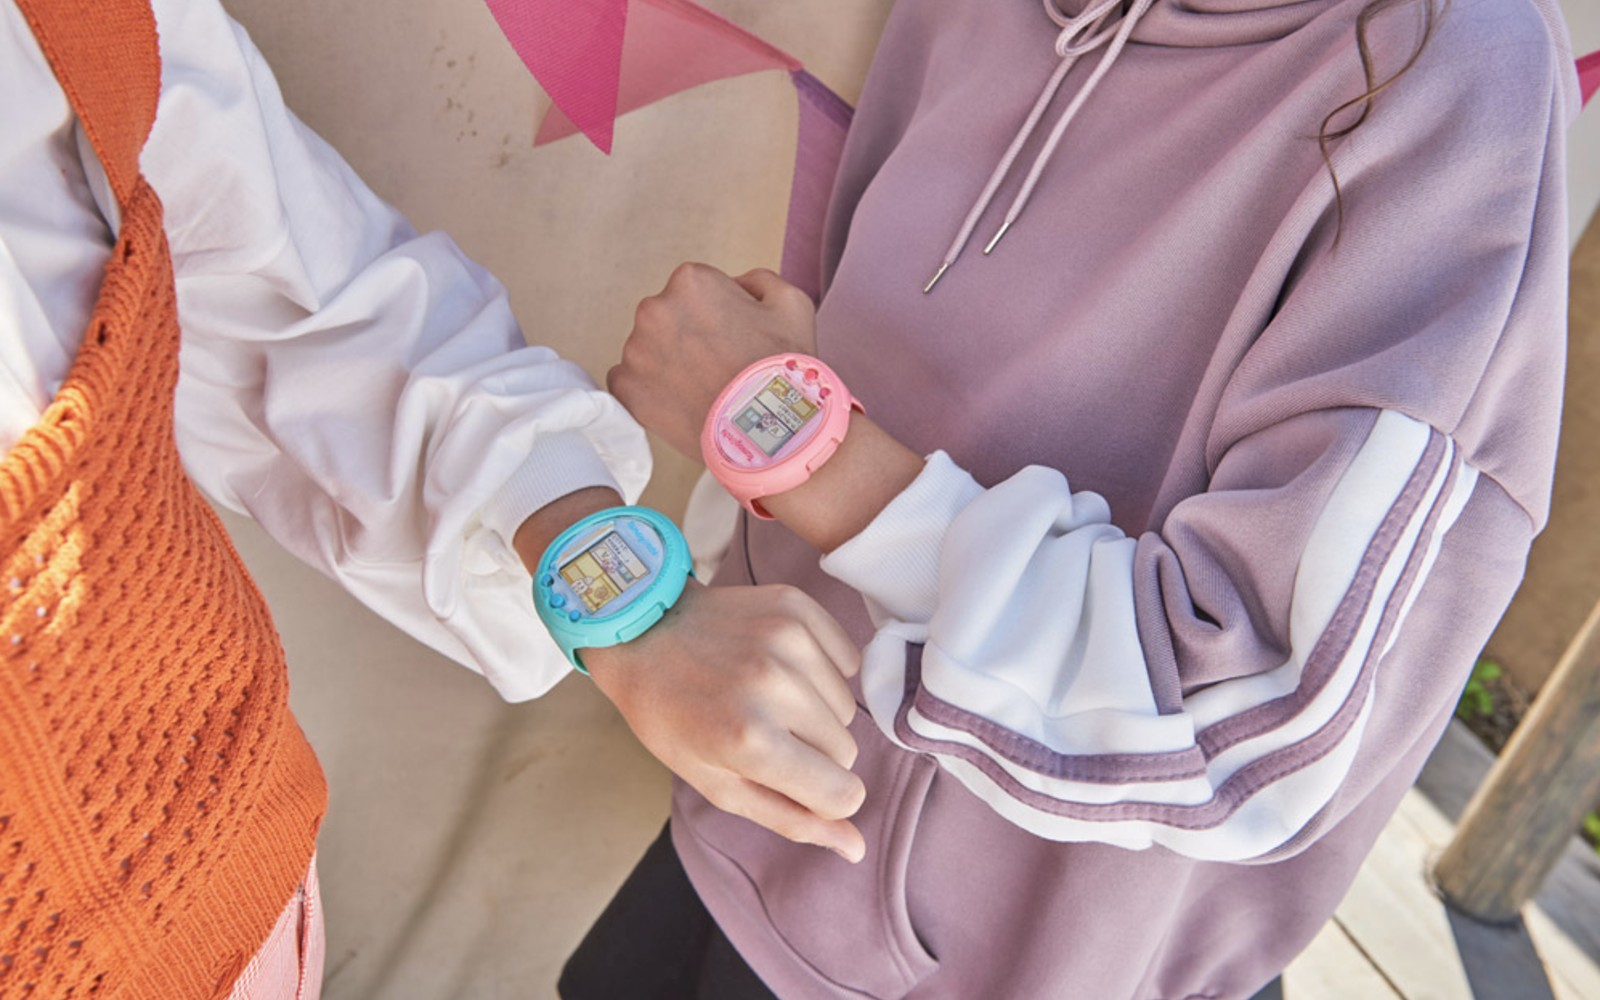 Tamagotchi is back again, this time in smartwatch form